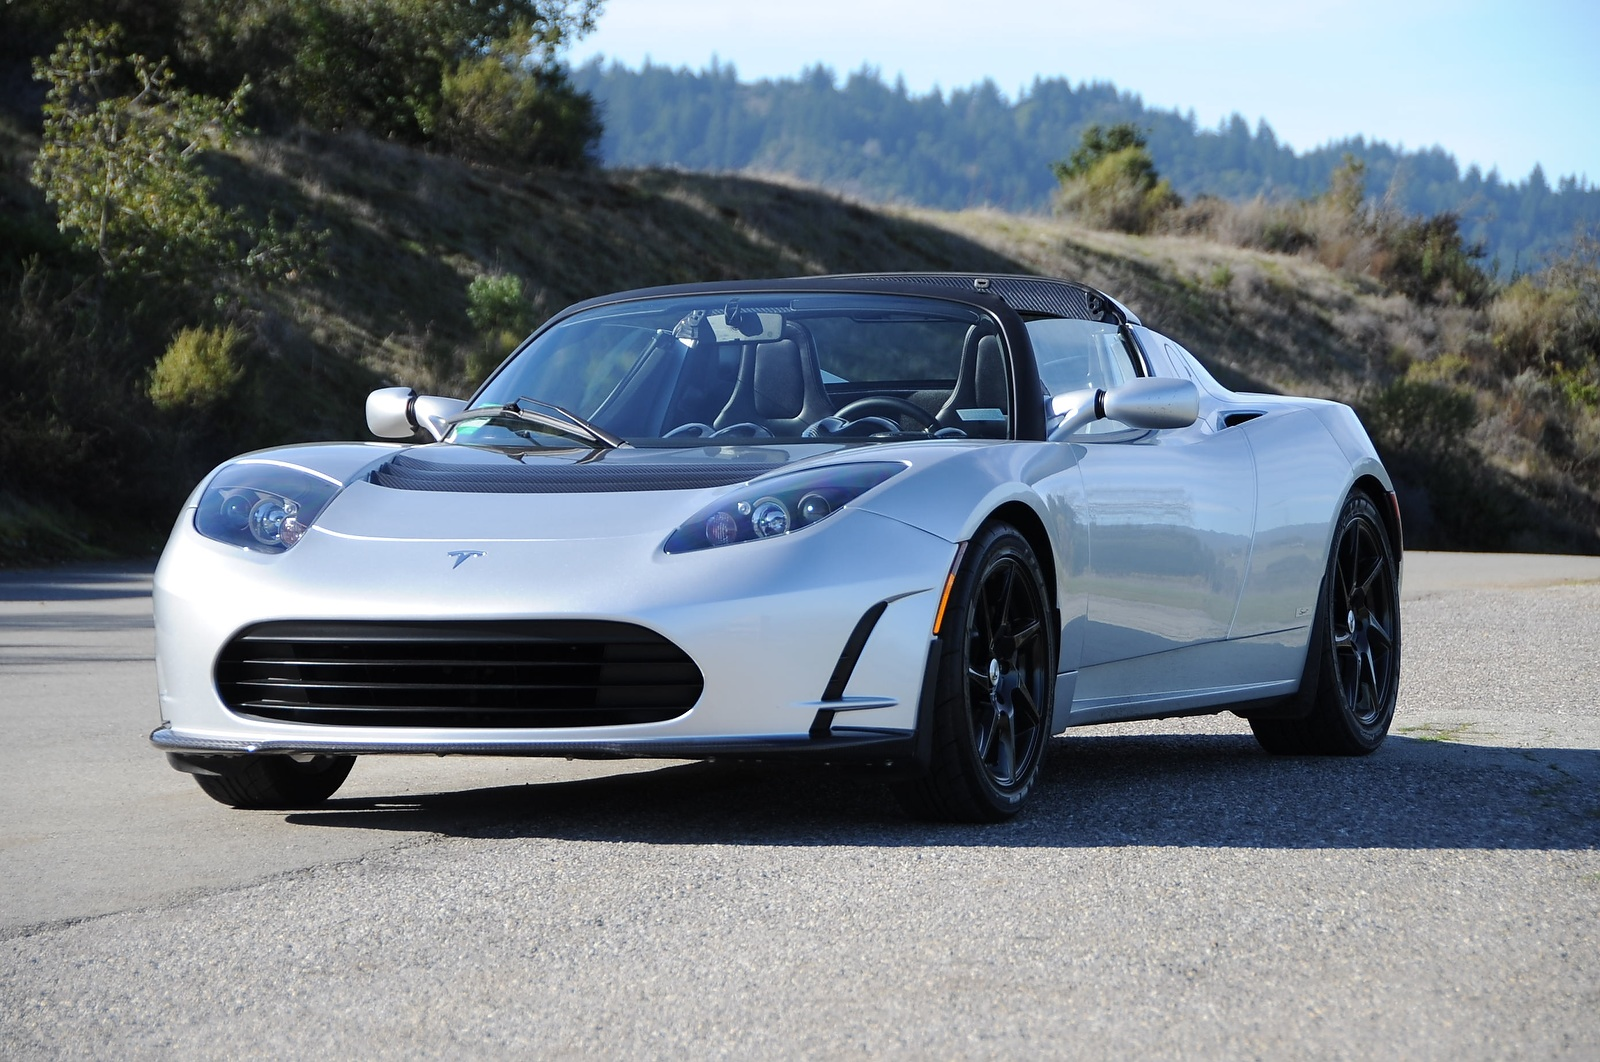 Tesla Roadster To Get Replacement Battery Mile Range Musk